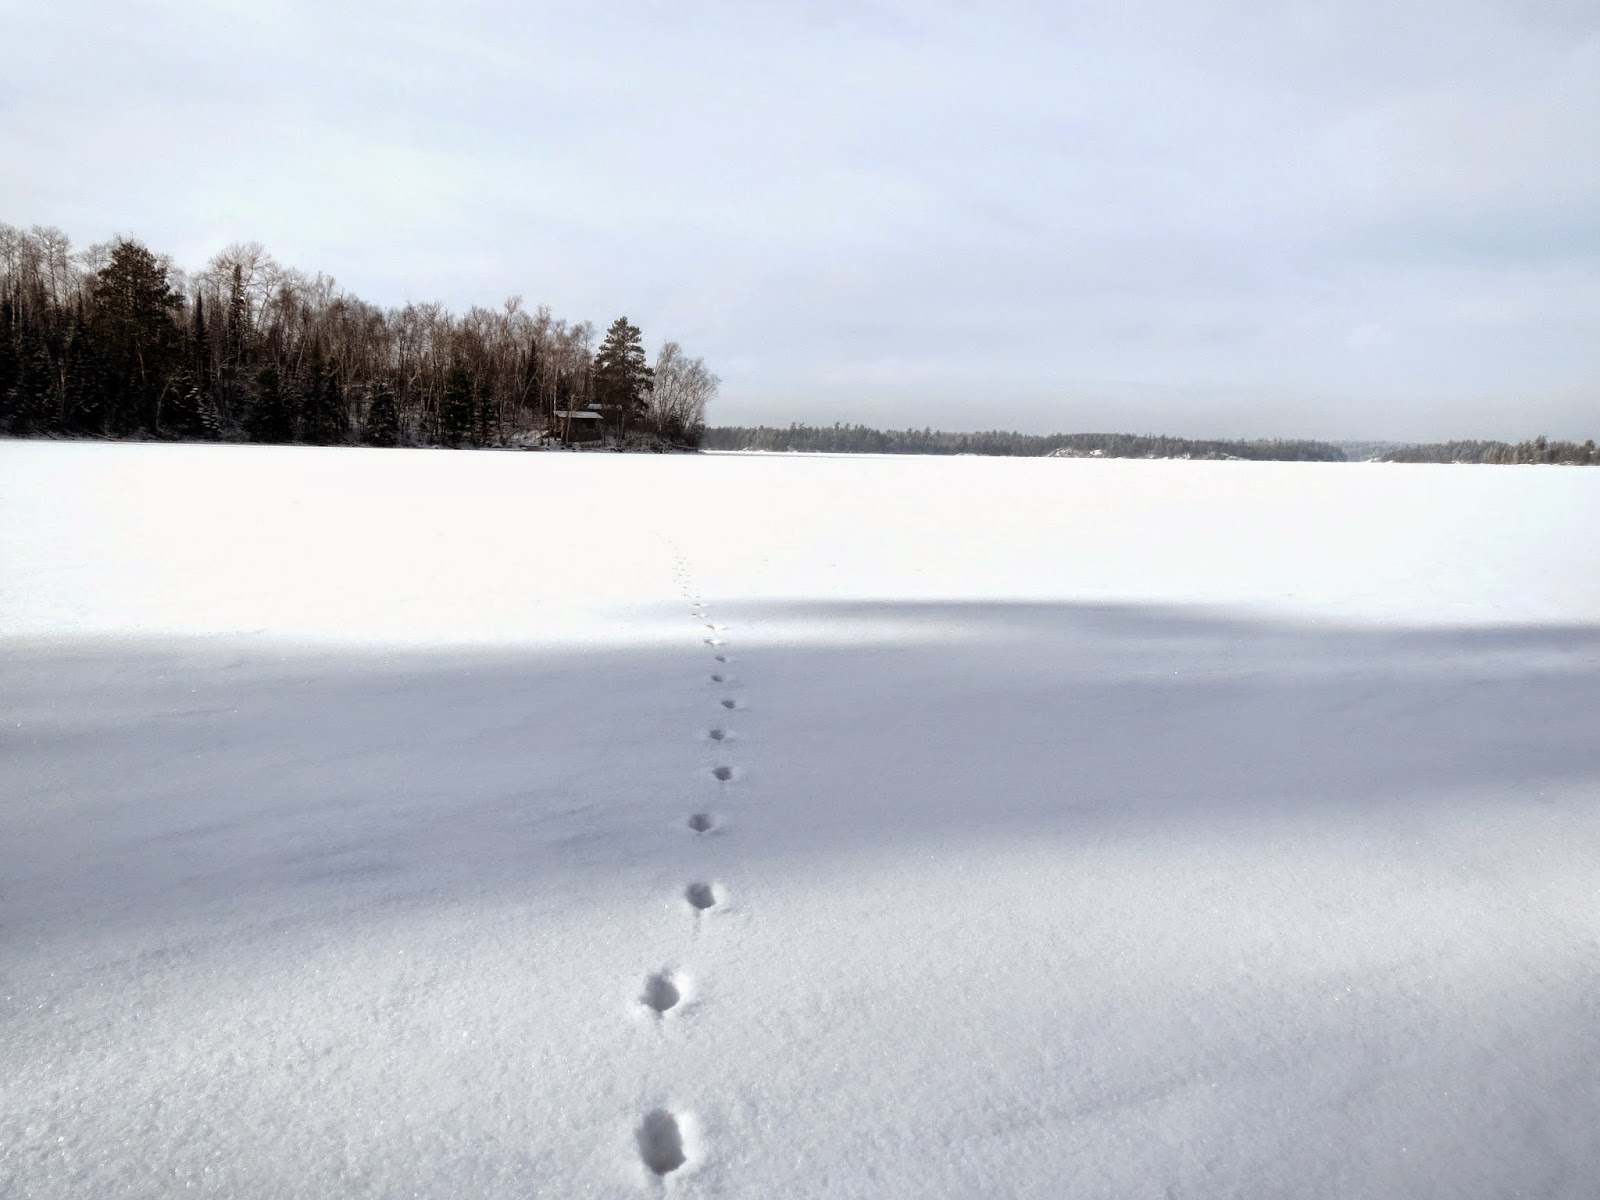 http://huismanconcepts.com/, ice, winter, frozen, lake, animal, tracks, Ely, Minnesota